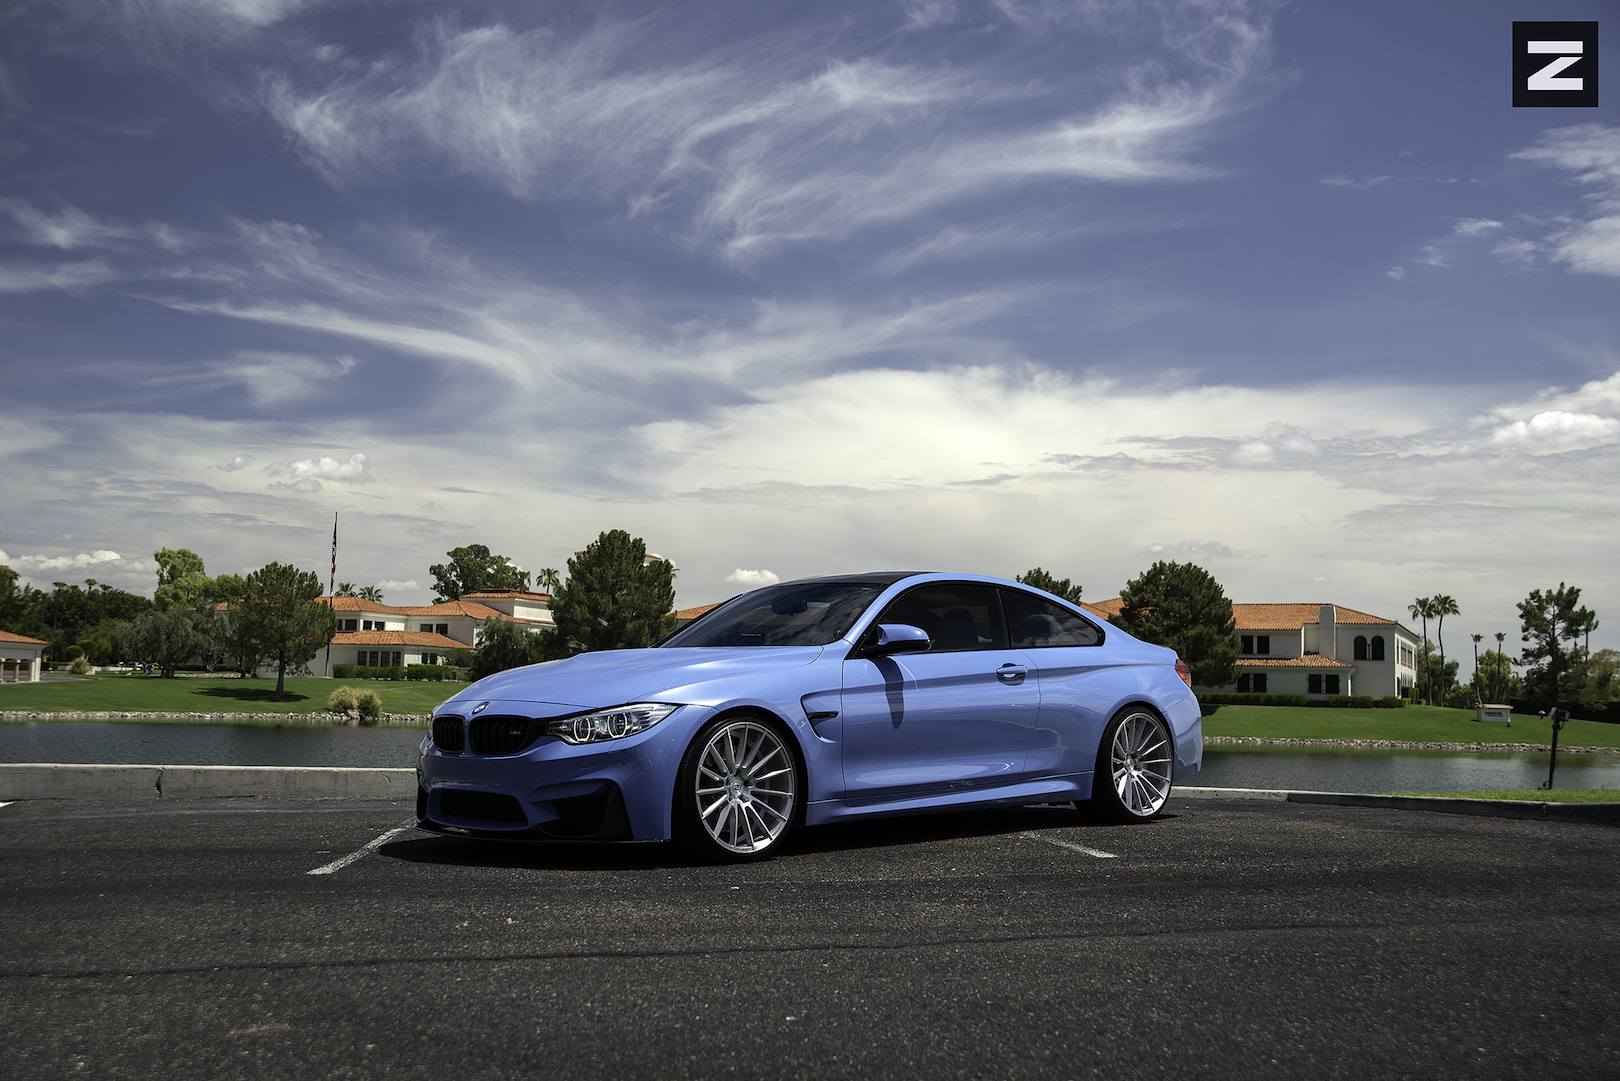 BMW F82 M4 Blue Brushed ZS15